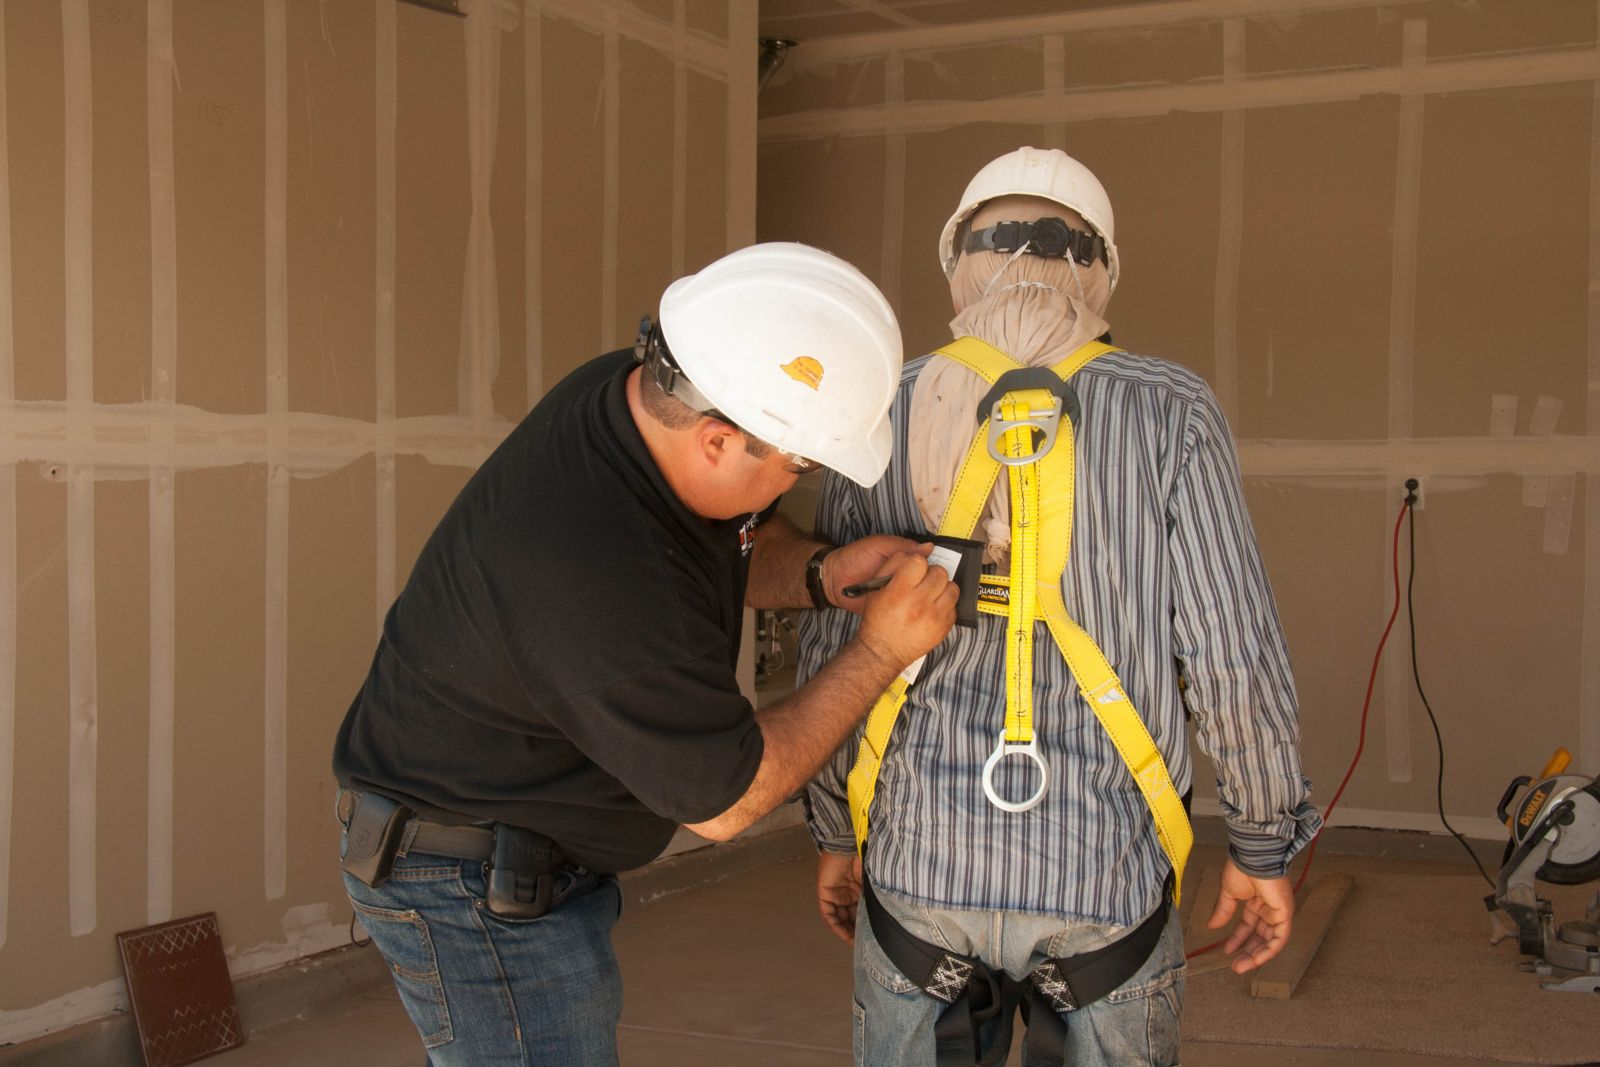 Lansing Workers Compensation Construction